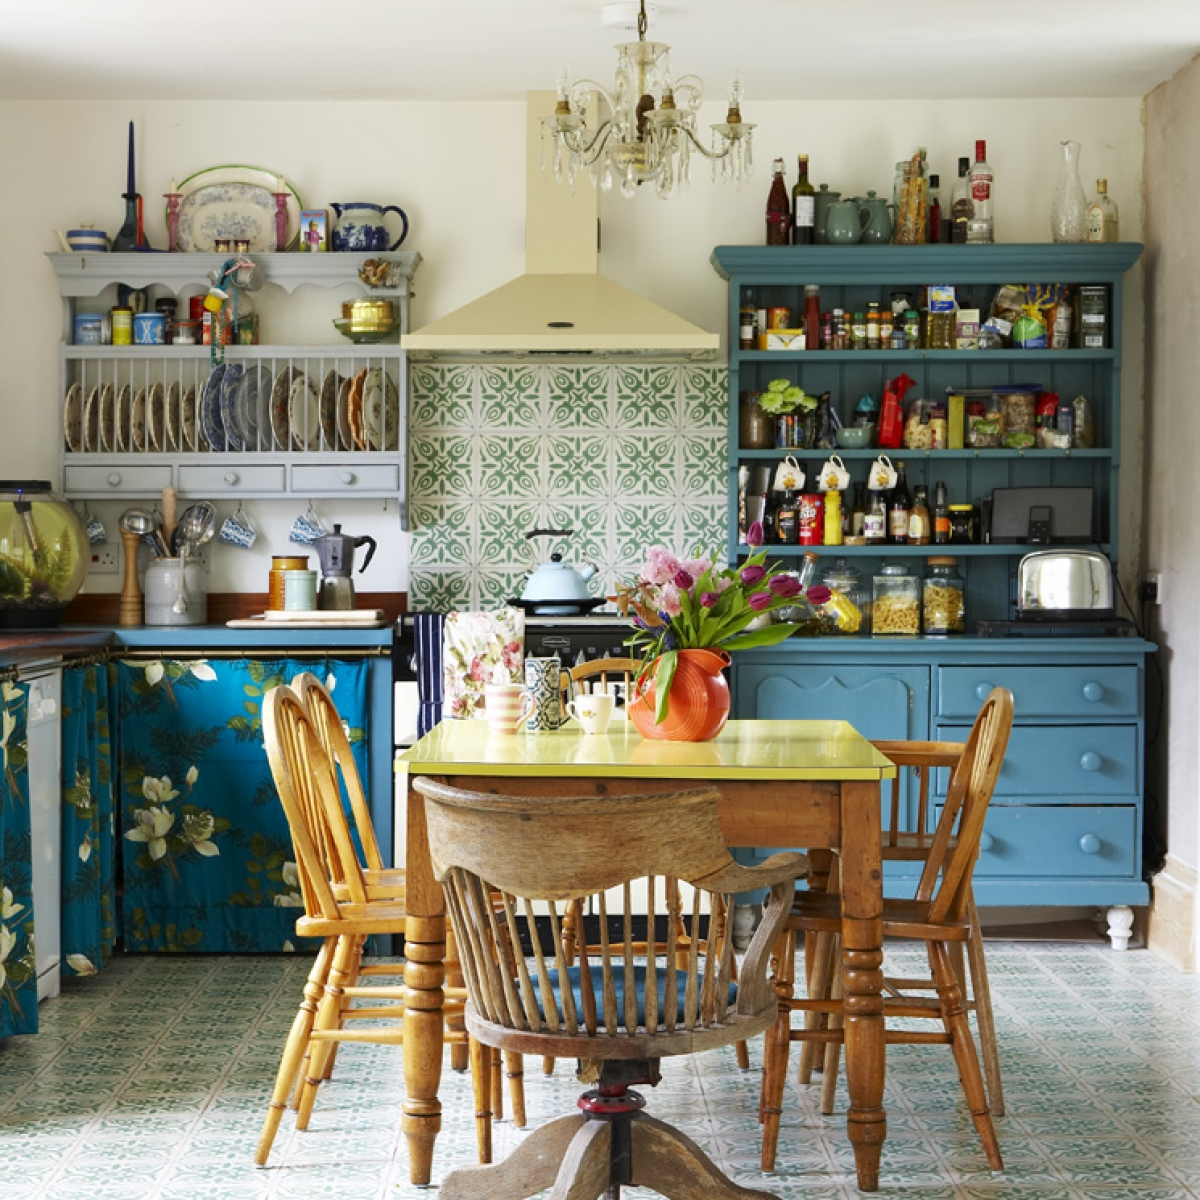 budget kitchen ideas and vintage style on a shoe string sophie - Budget Kitchen Ideas